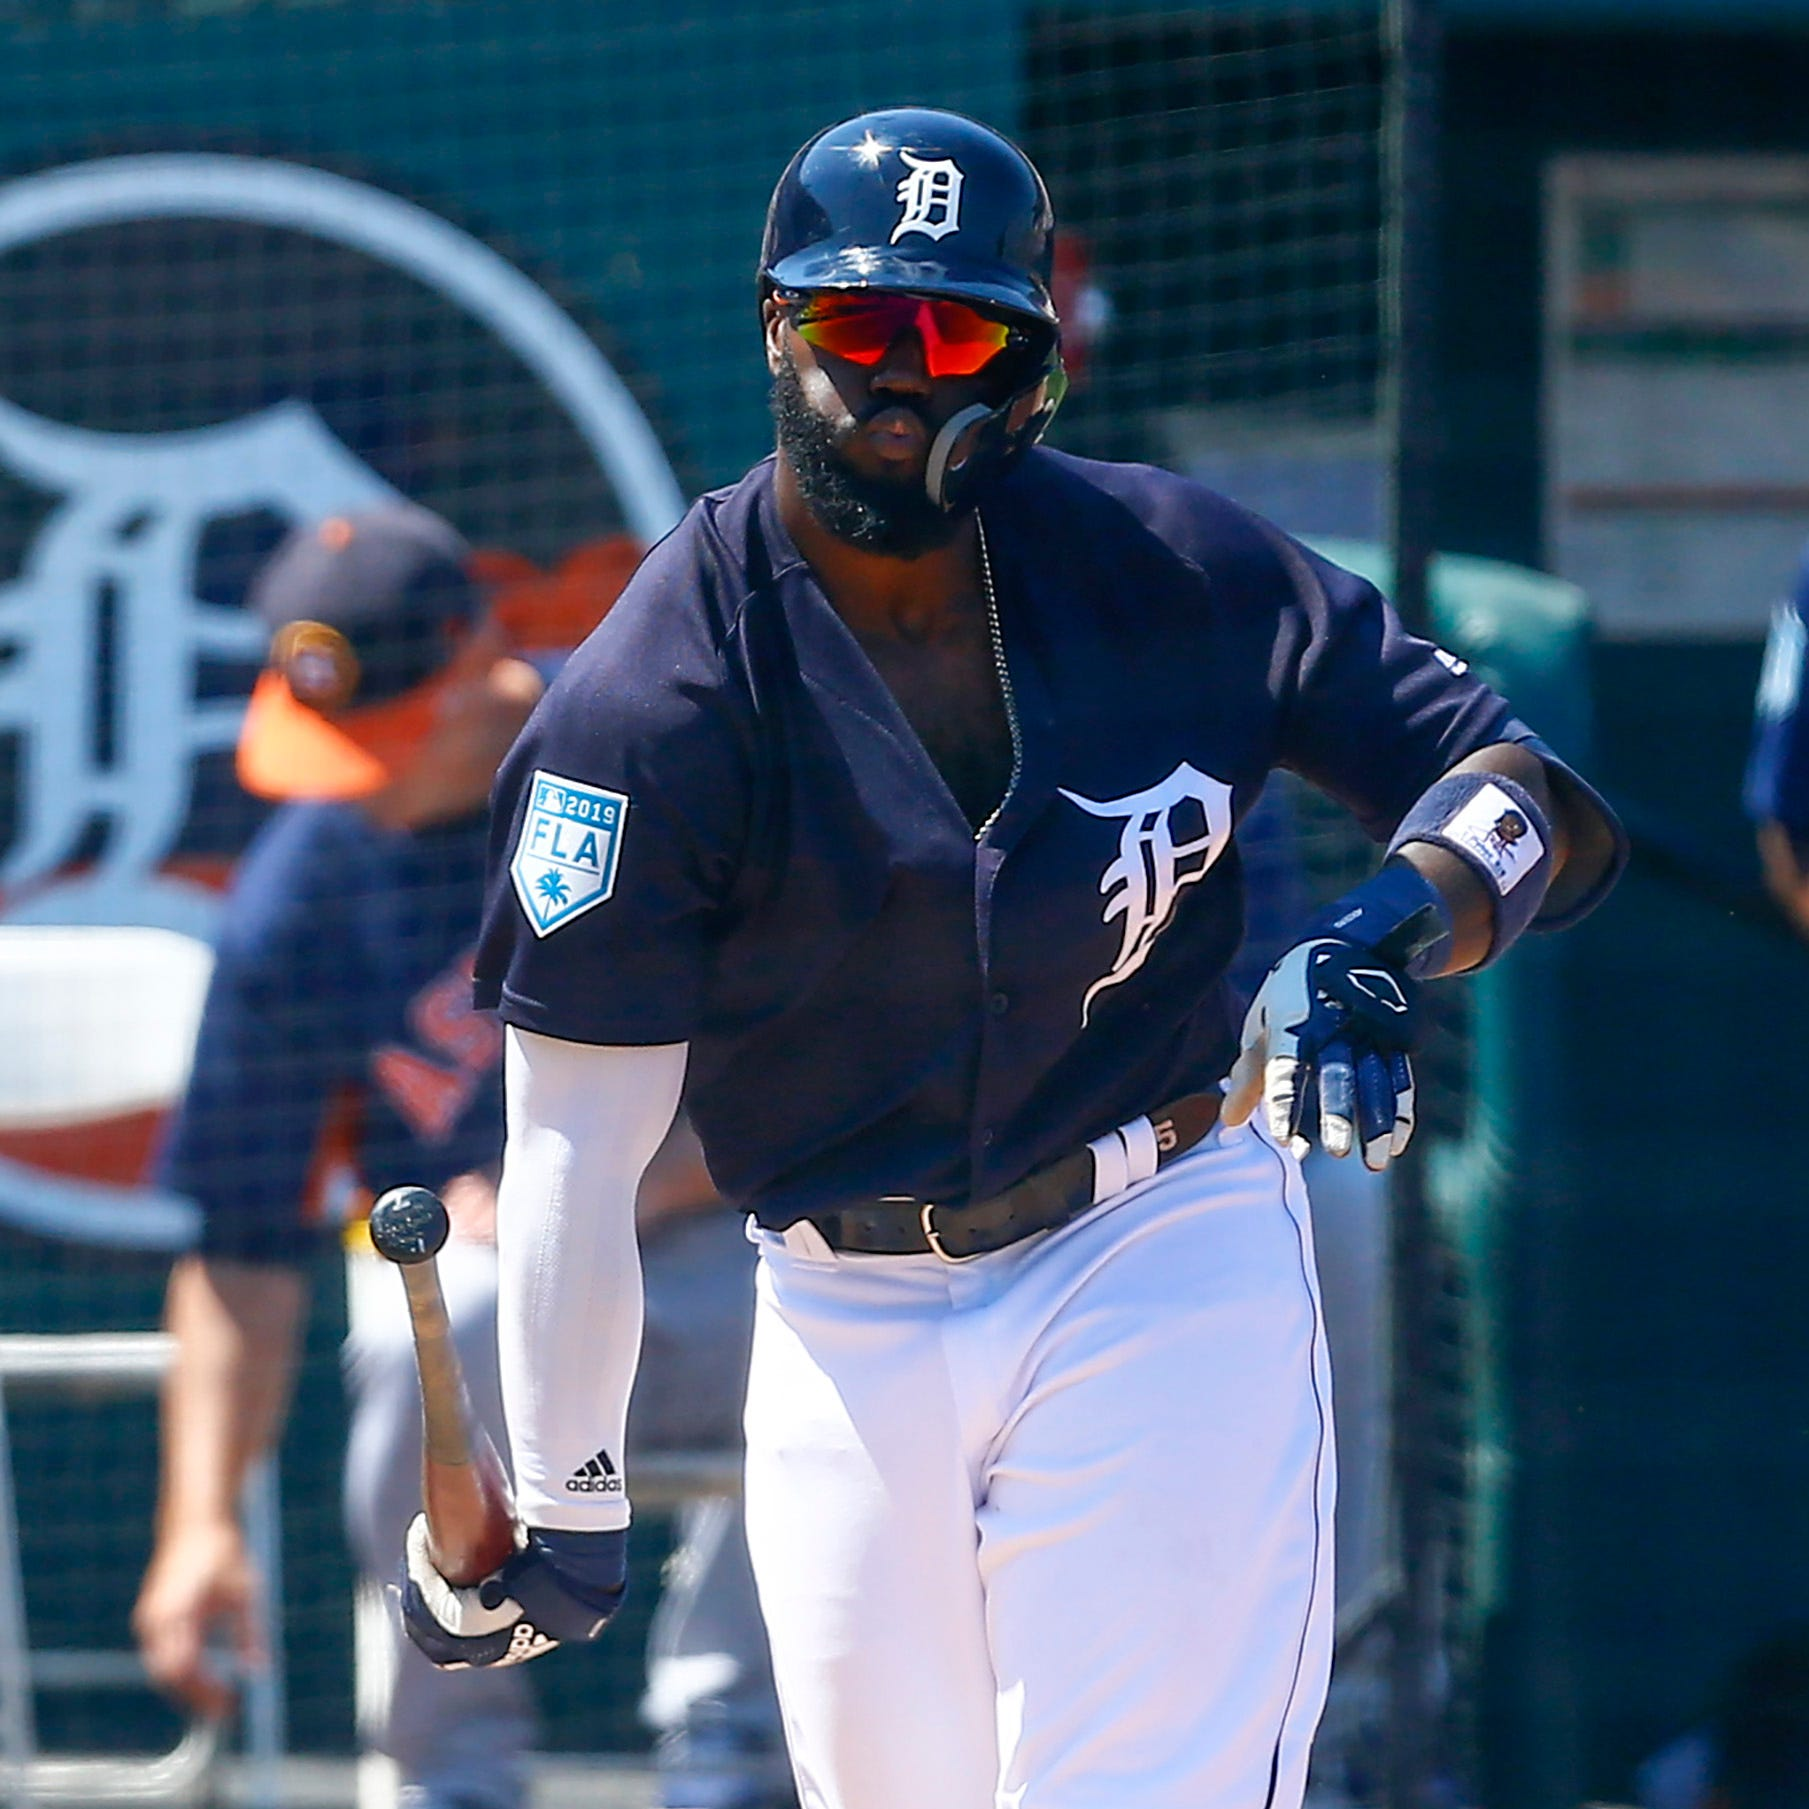 Detroit Tigers vs. Toronto Blue Jays: Opening Day lineup is here